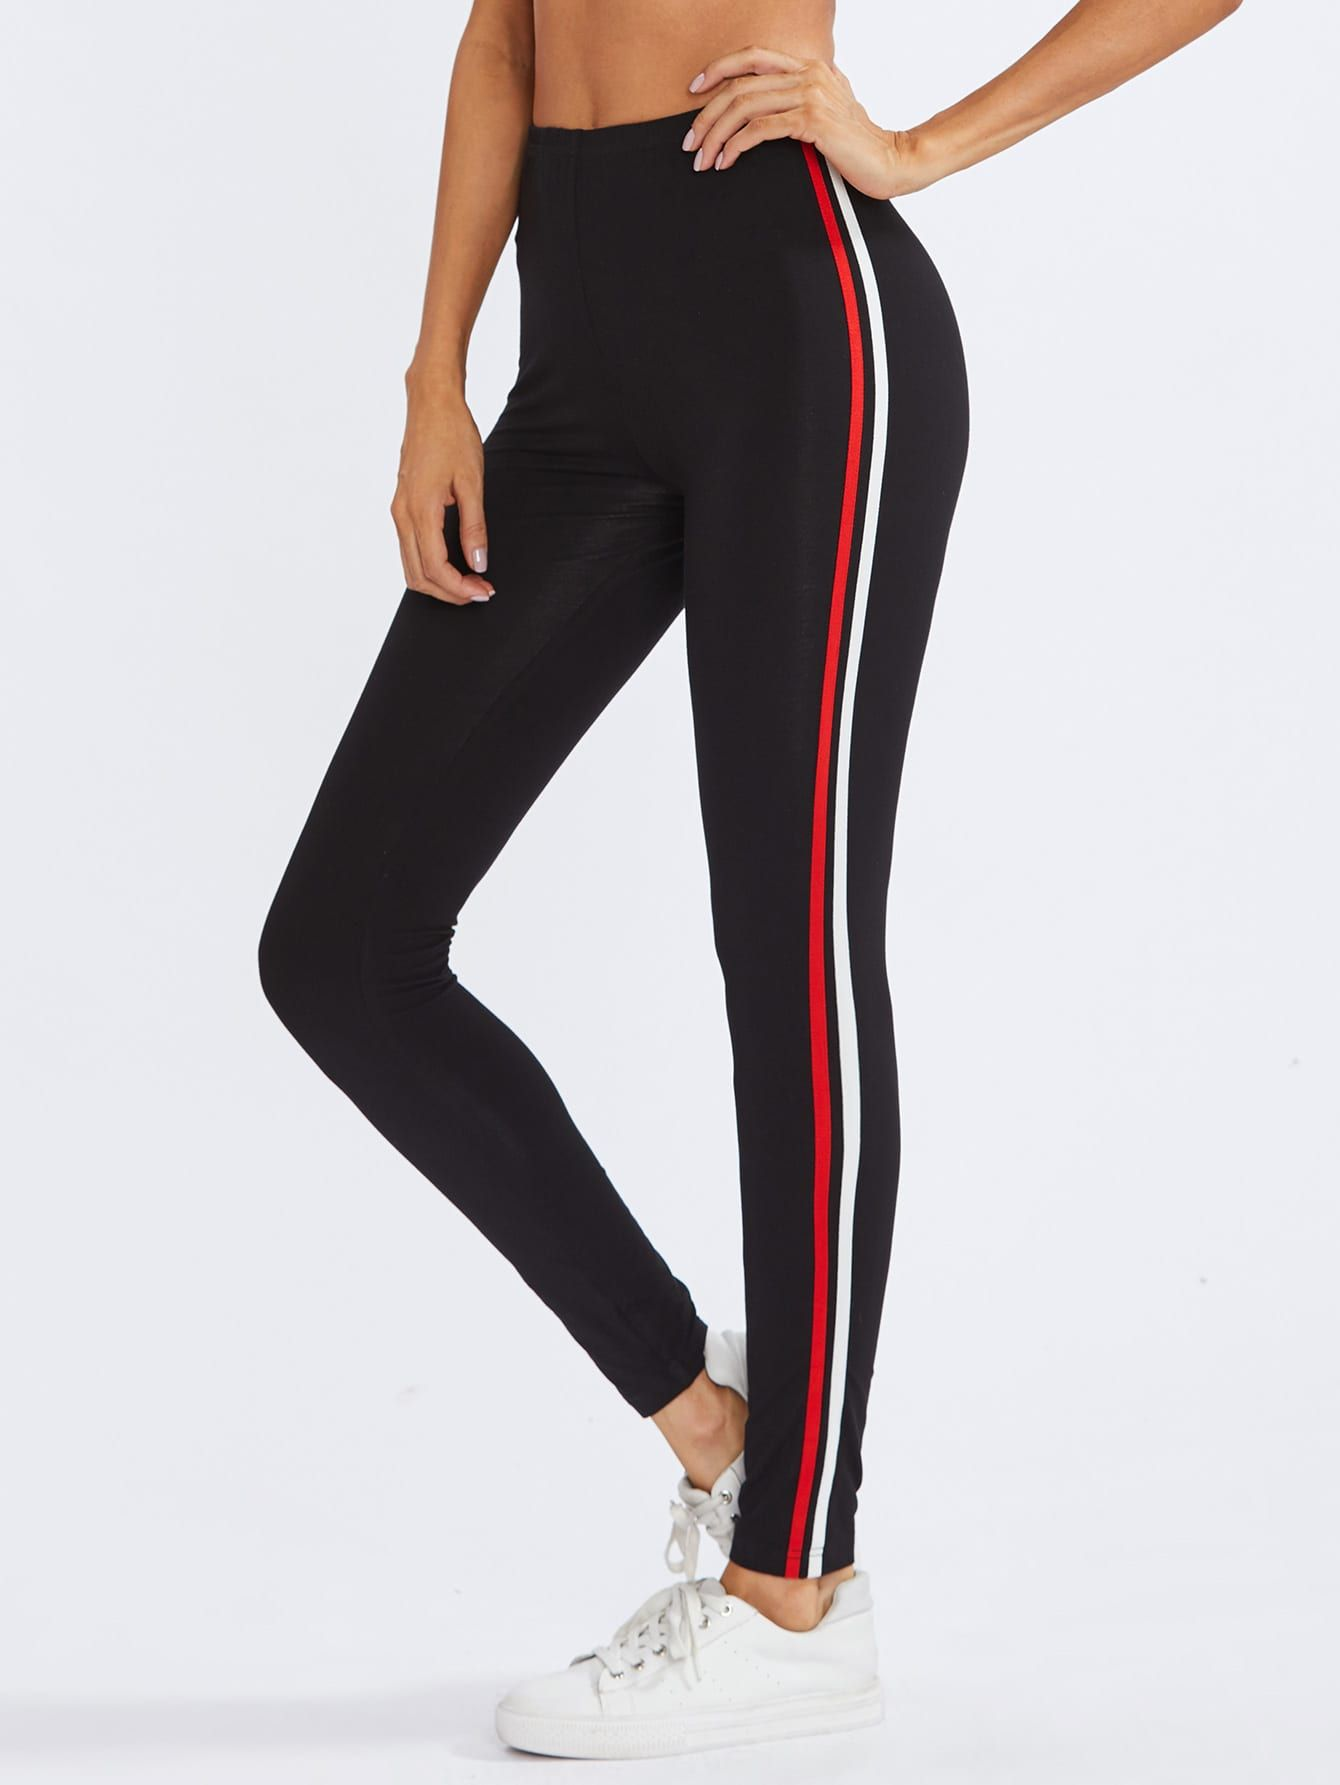 fc3b3c837ebdb Get more info about why peoples like Sporty Regular Striped Black Crop  Length Striped Side Leggings on daydaychic.com. Our wide fashion clothing  selection ...